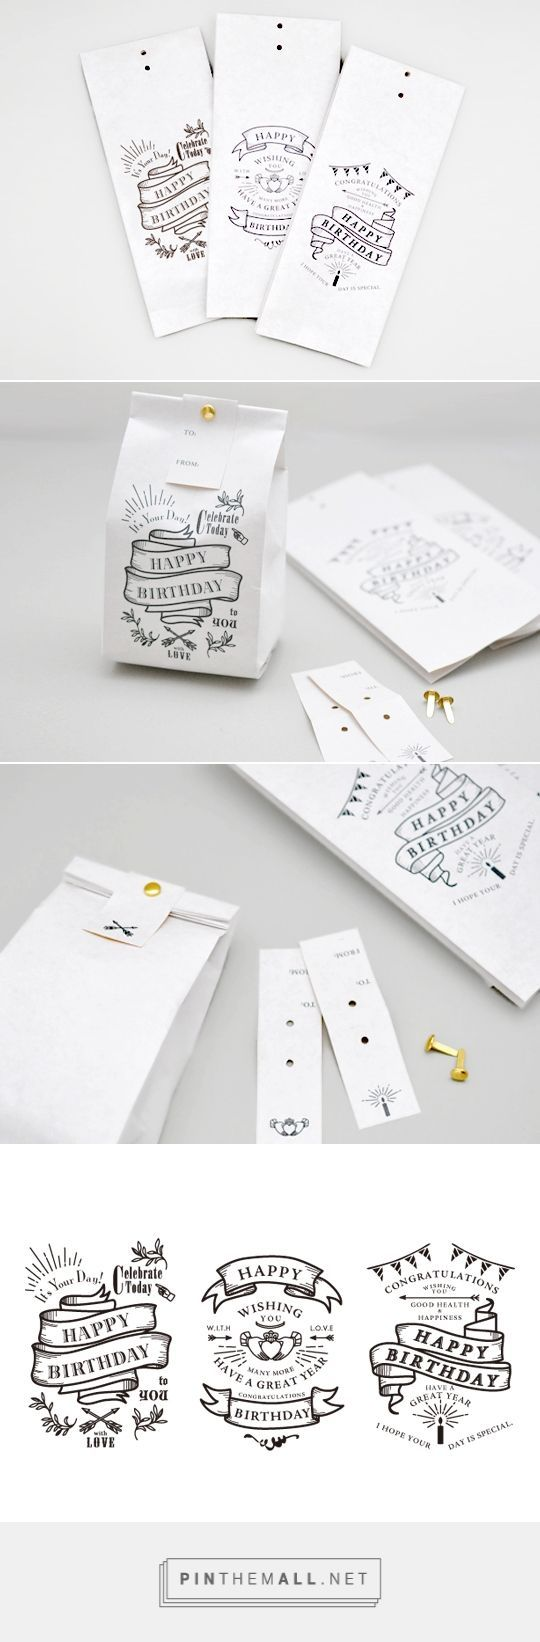 Birthday #packaging via KNOOP curated by Packaging Diva PD. So simple anybody could do this clever idea created via http://www.knoop-works.com/?pid=69194656: